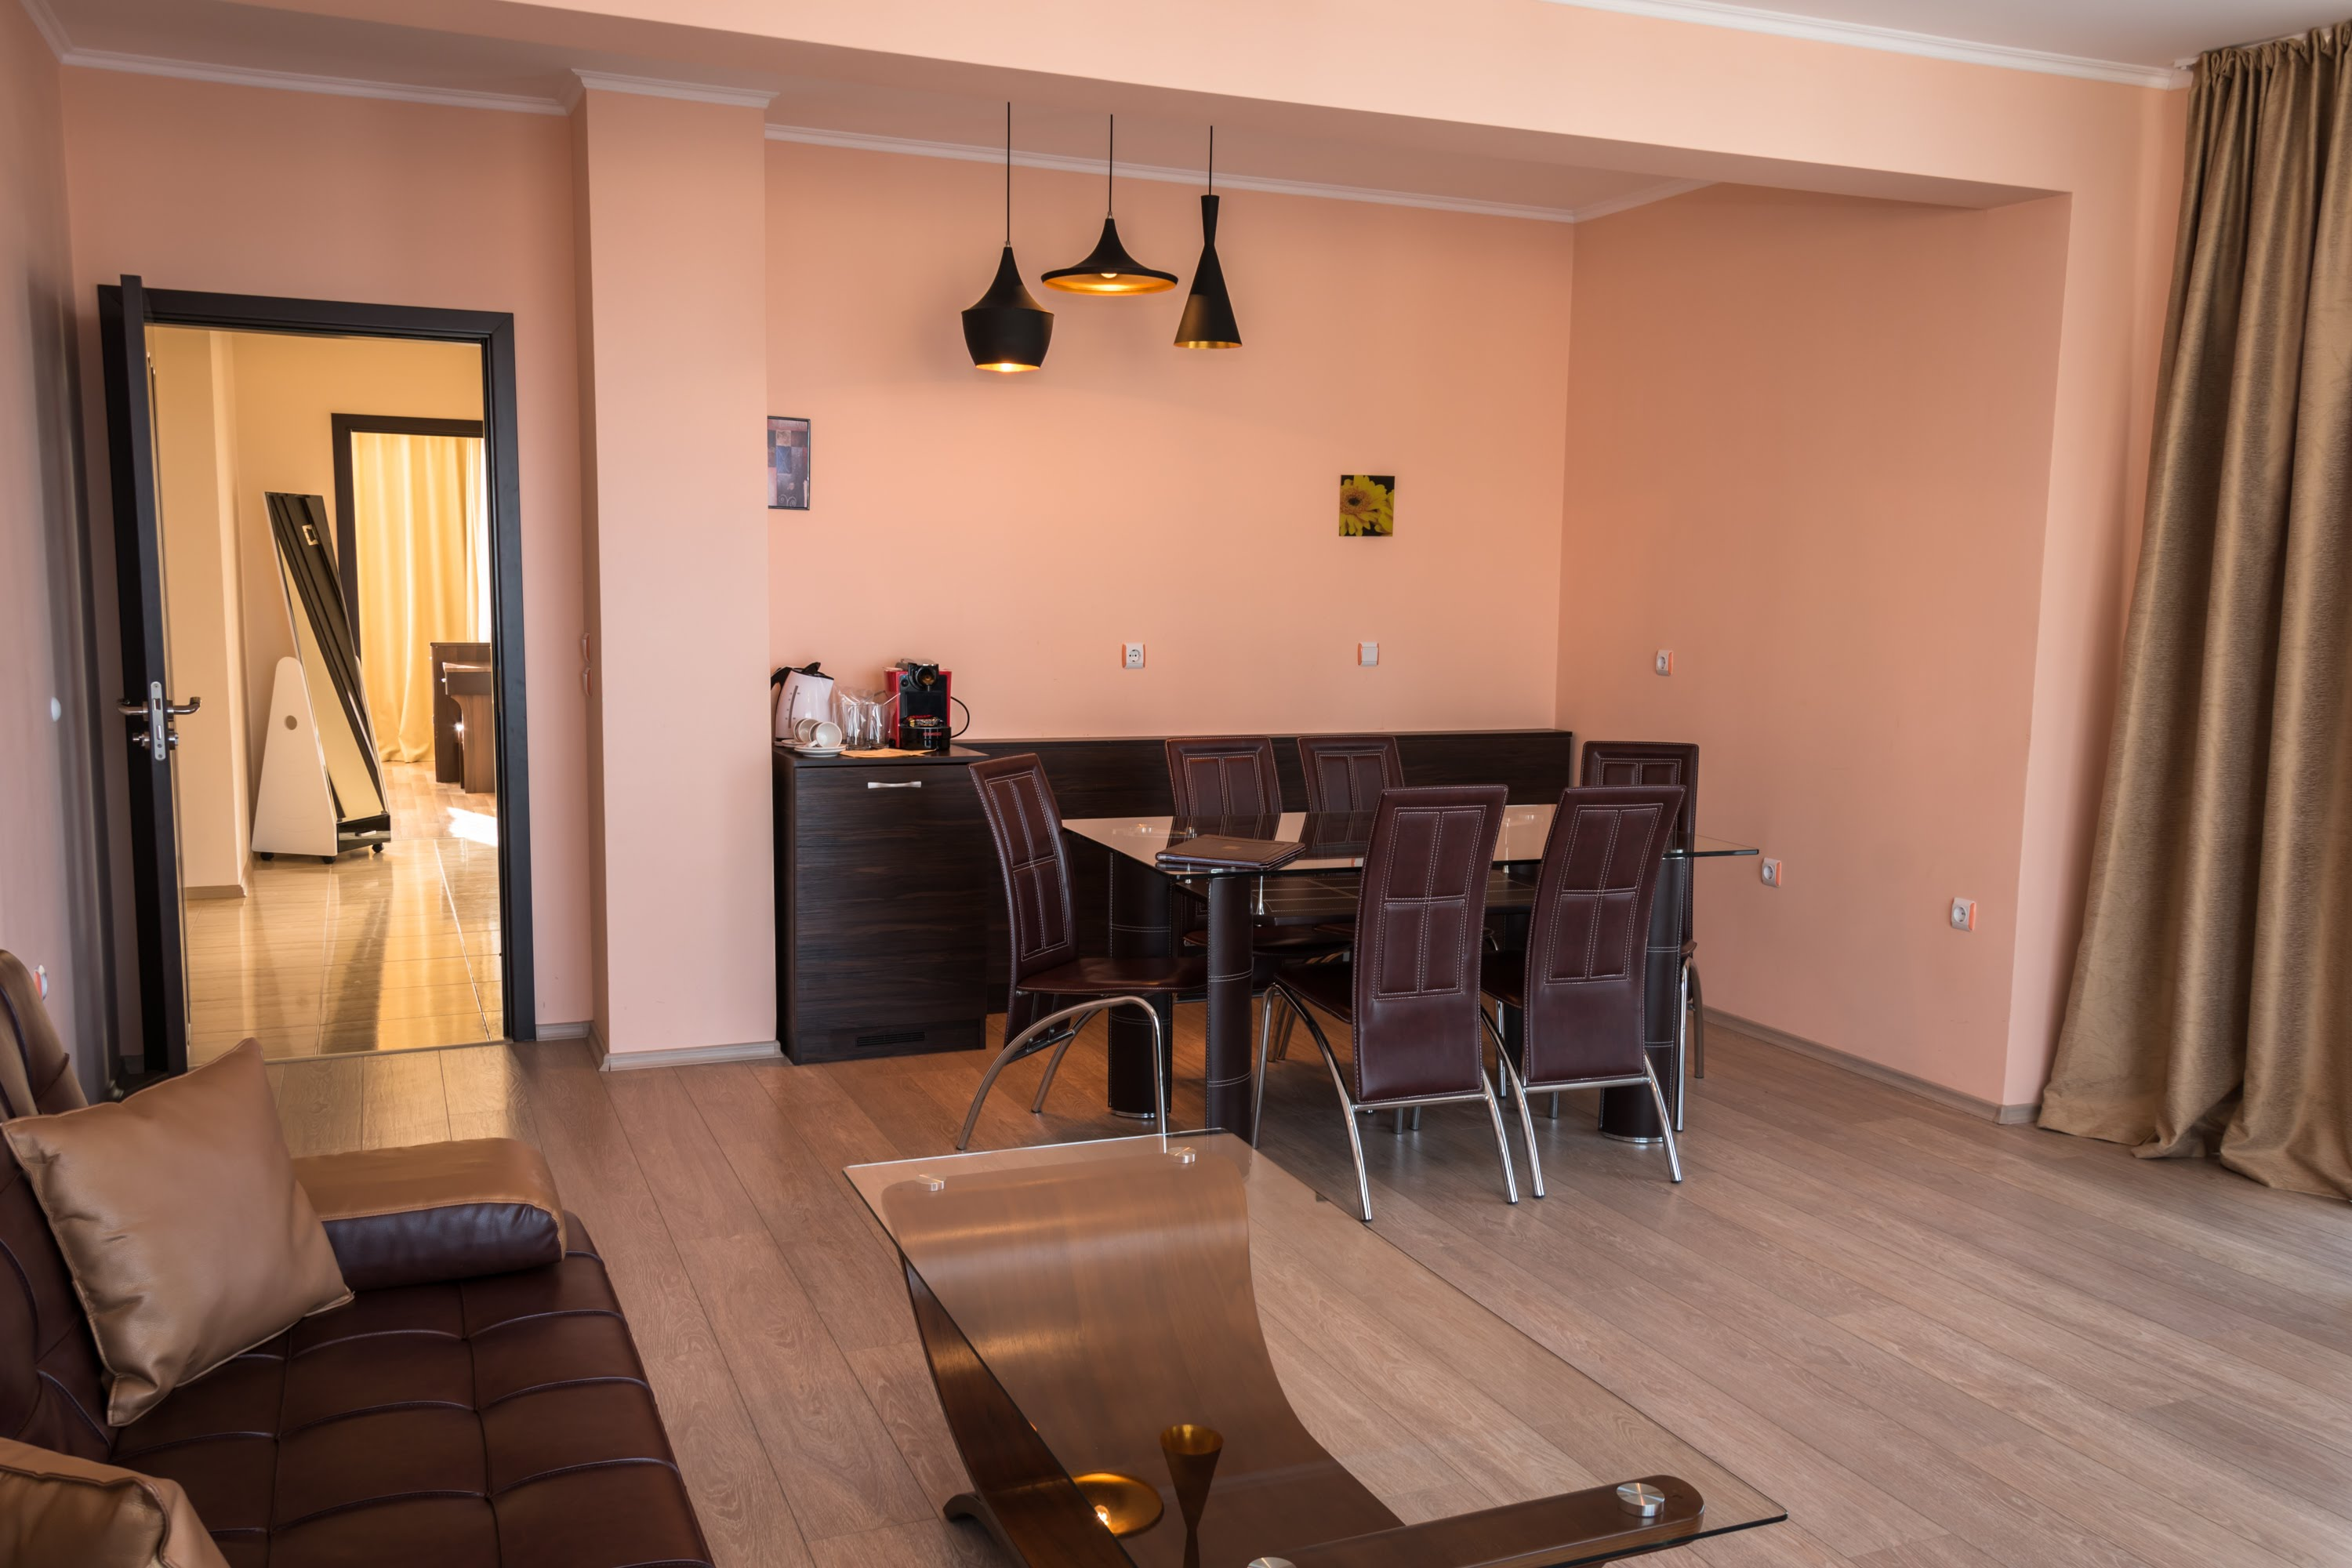 THREE BEDROOM APARTMENT WITHOUT KITCHEN